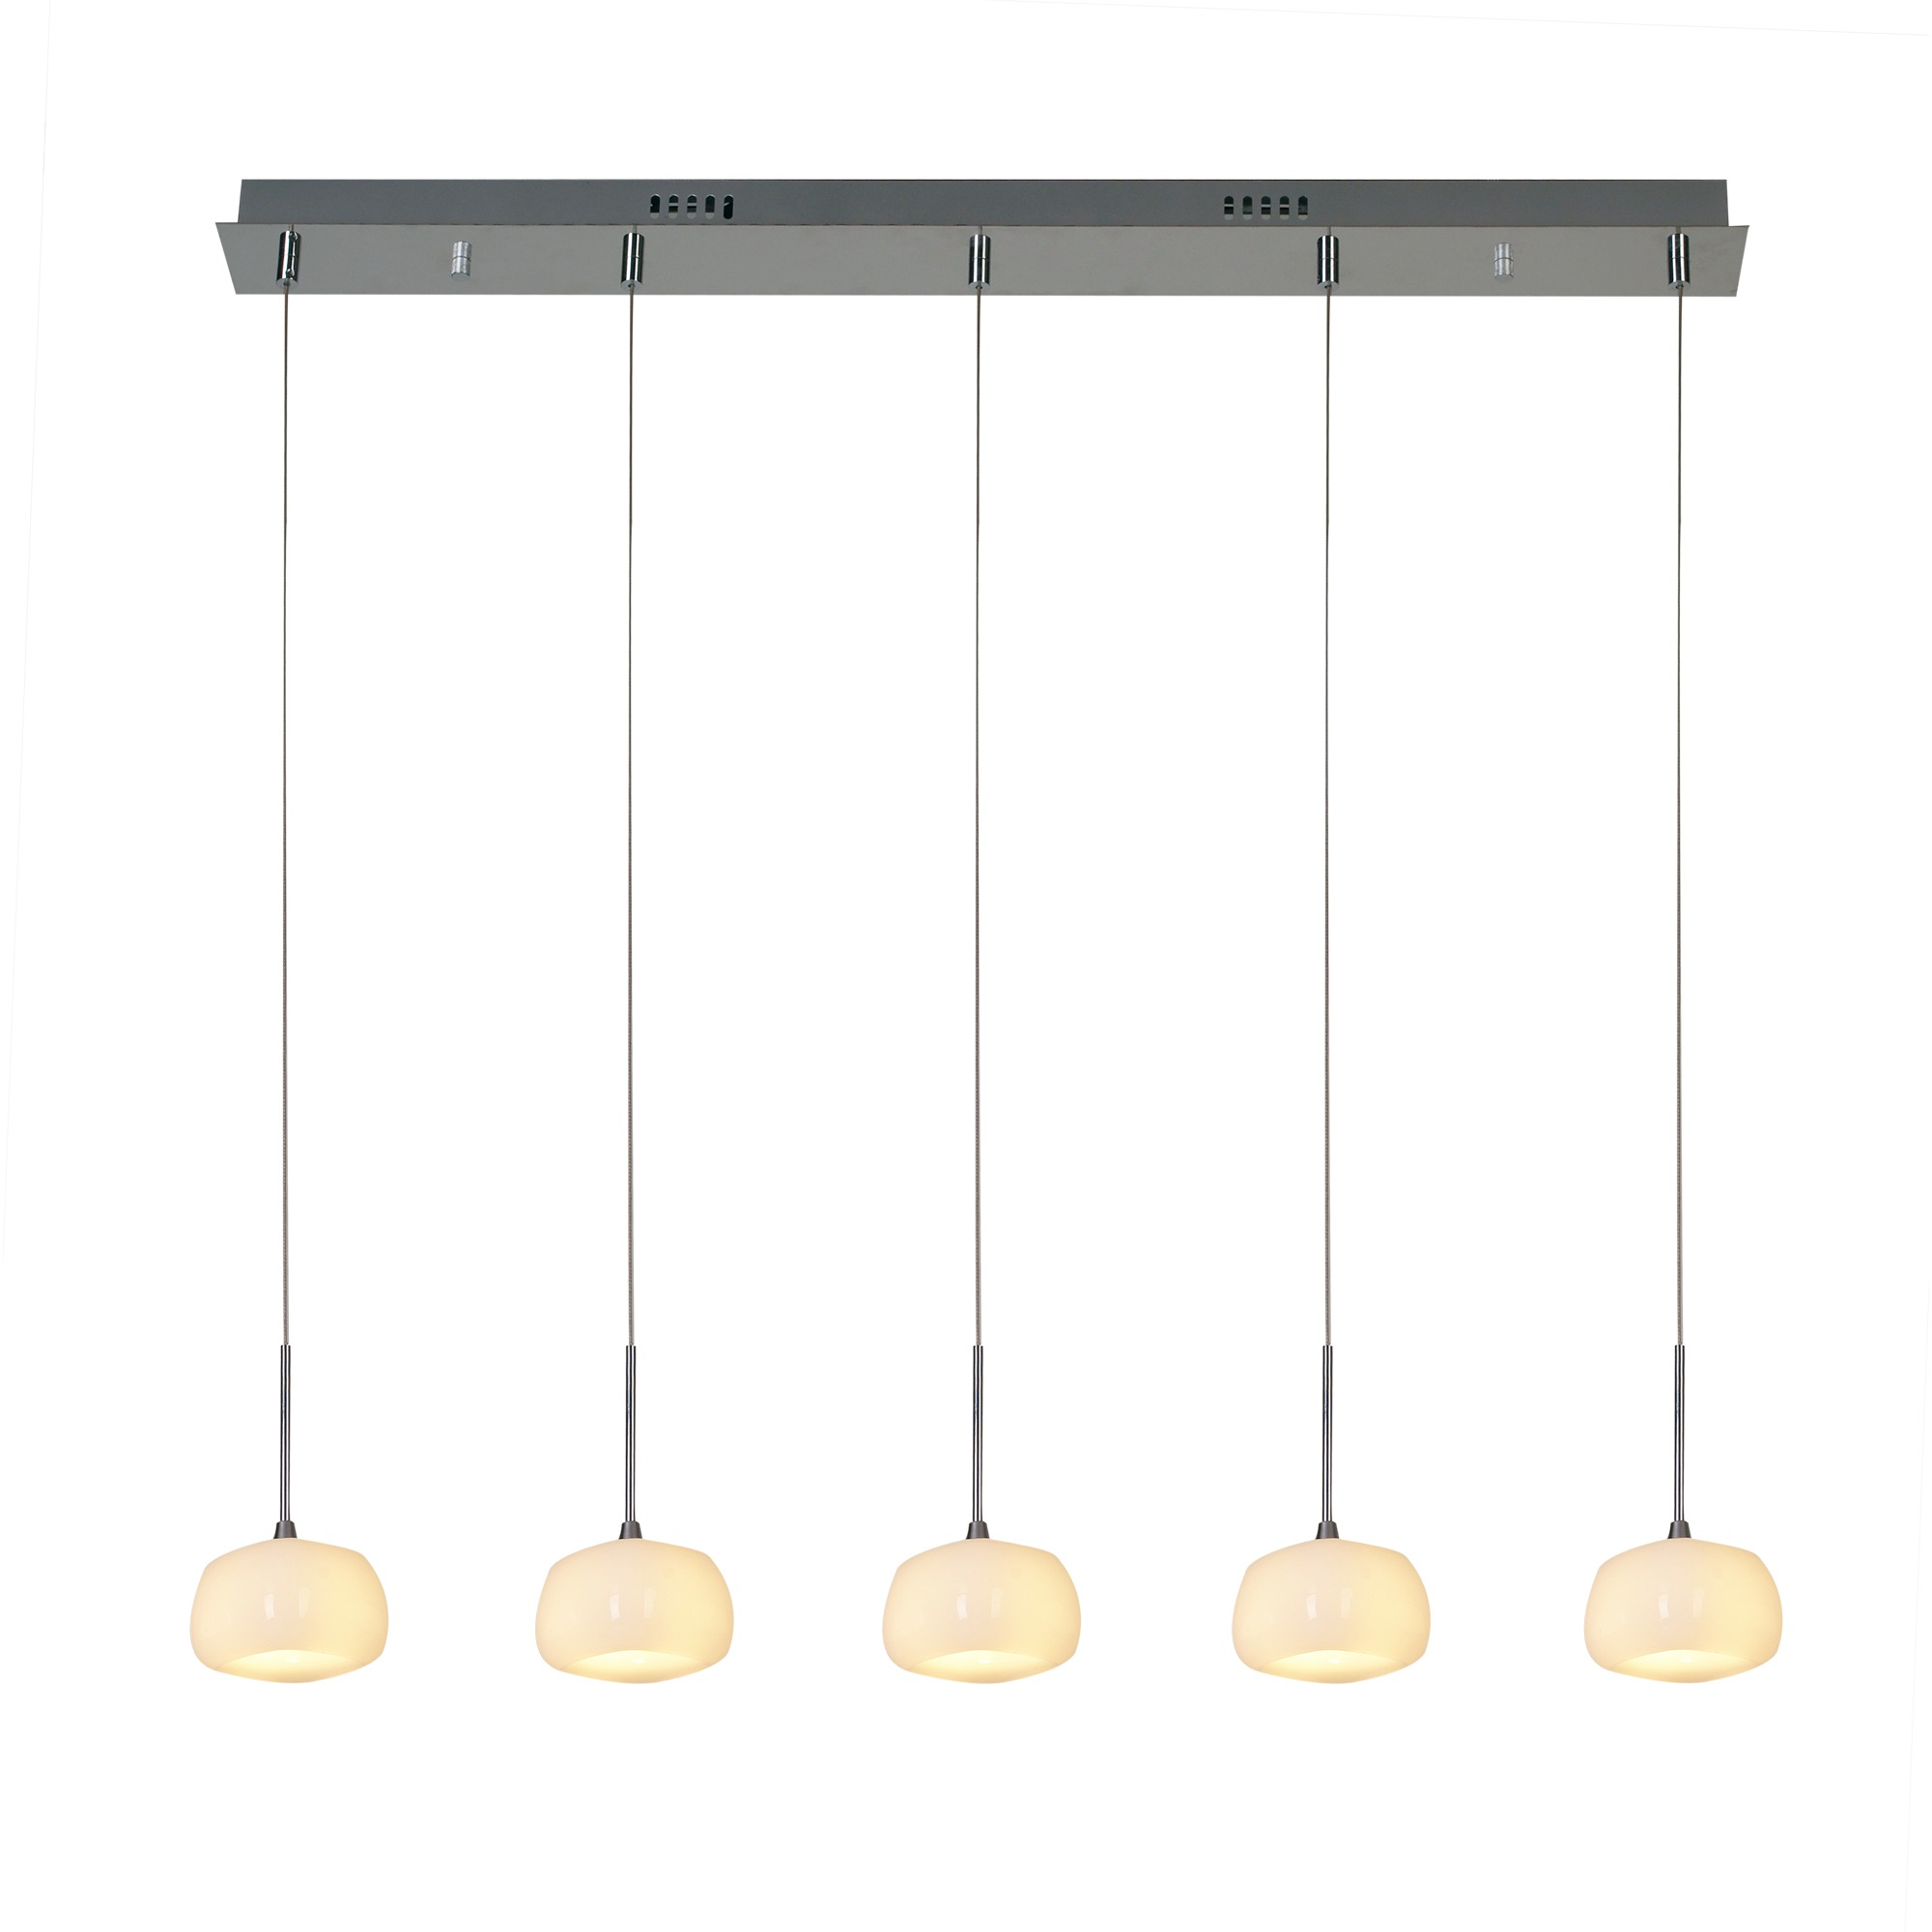 Hanglamp Miley chroom/wit